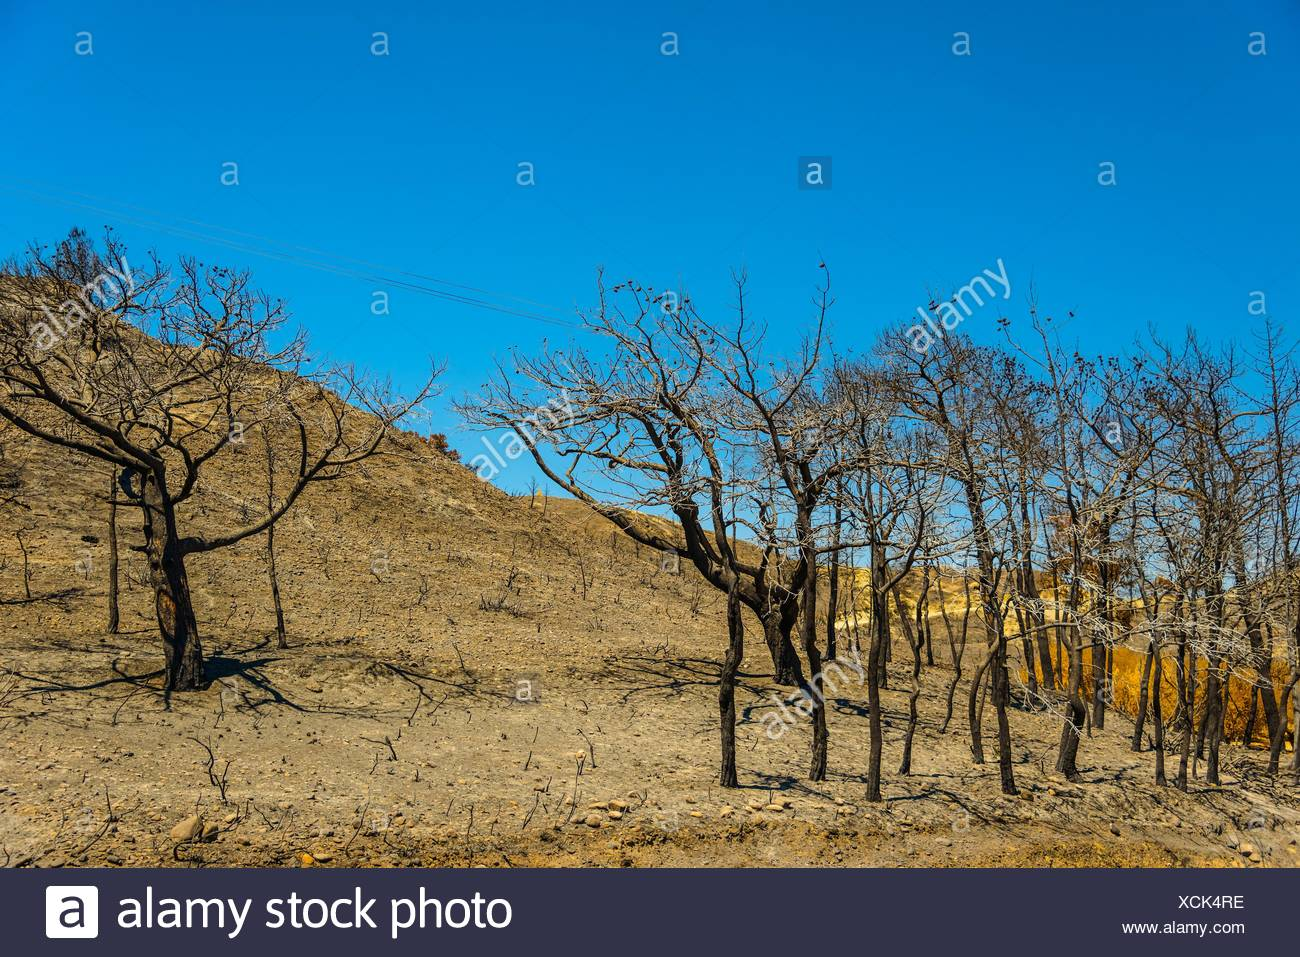 burnt in the fire of trees in the background of hills and sky - Stock Image